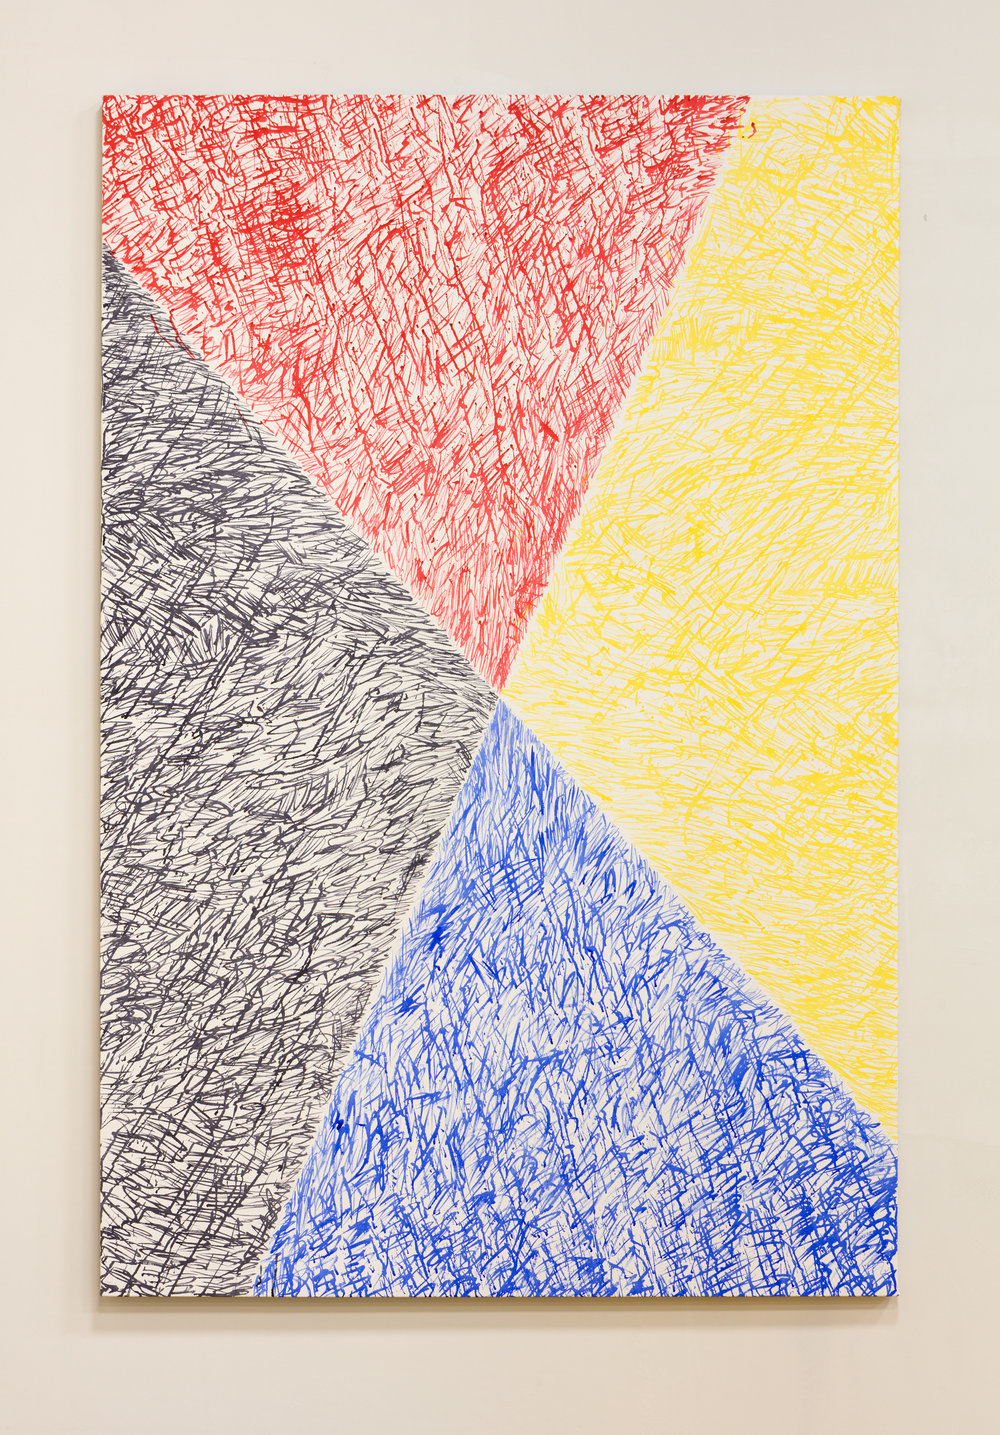 Moreno , 2016 Acrylic ink on canvas 76.5 x 53.25 inches